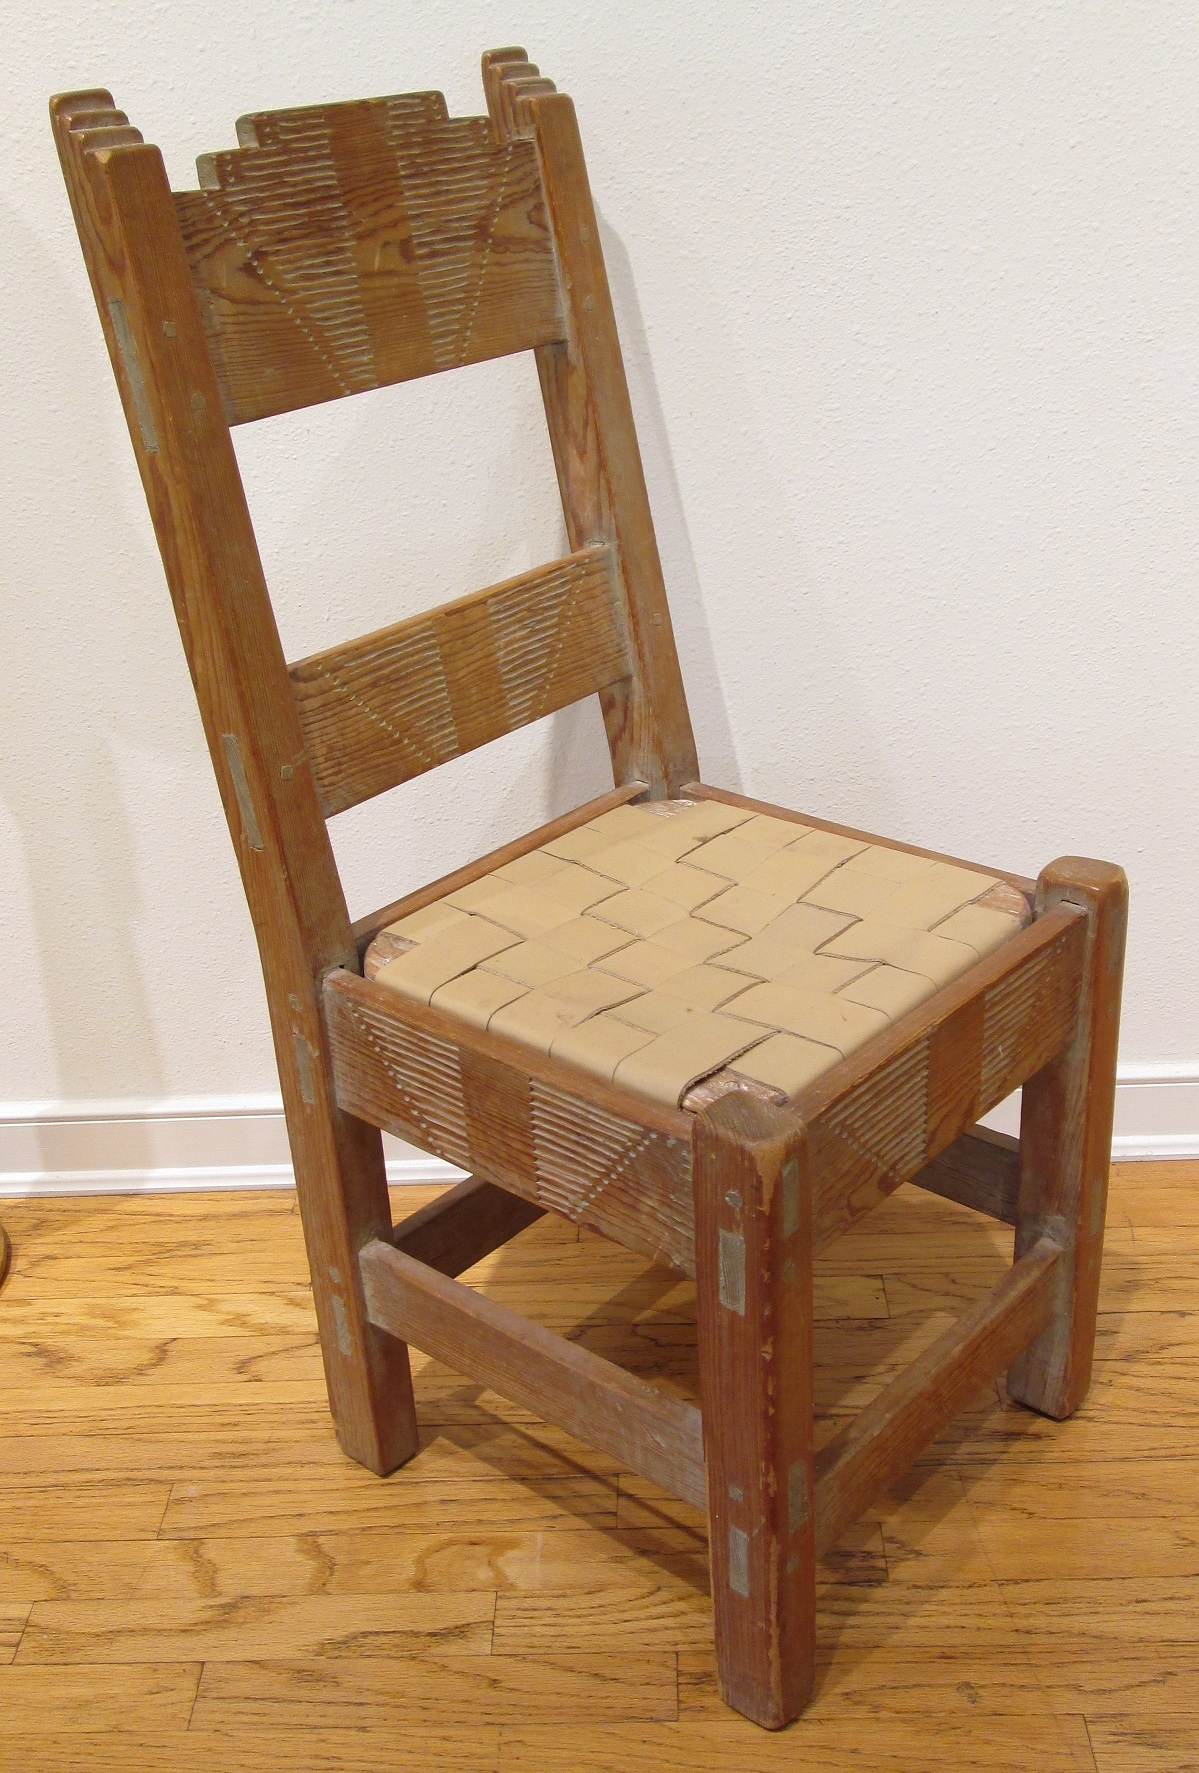 New Mexico WPA Era Chair